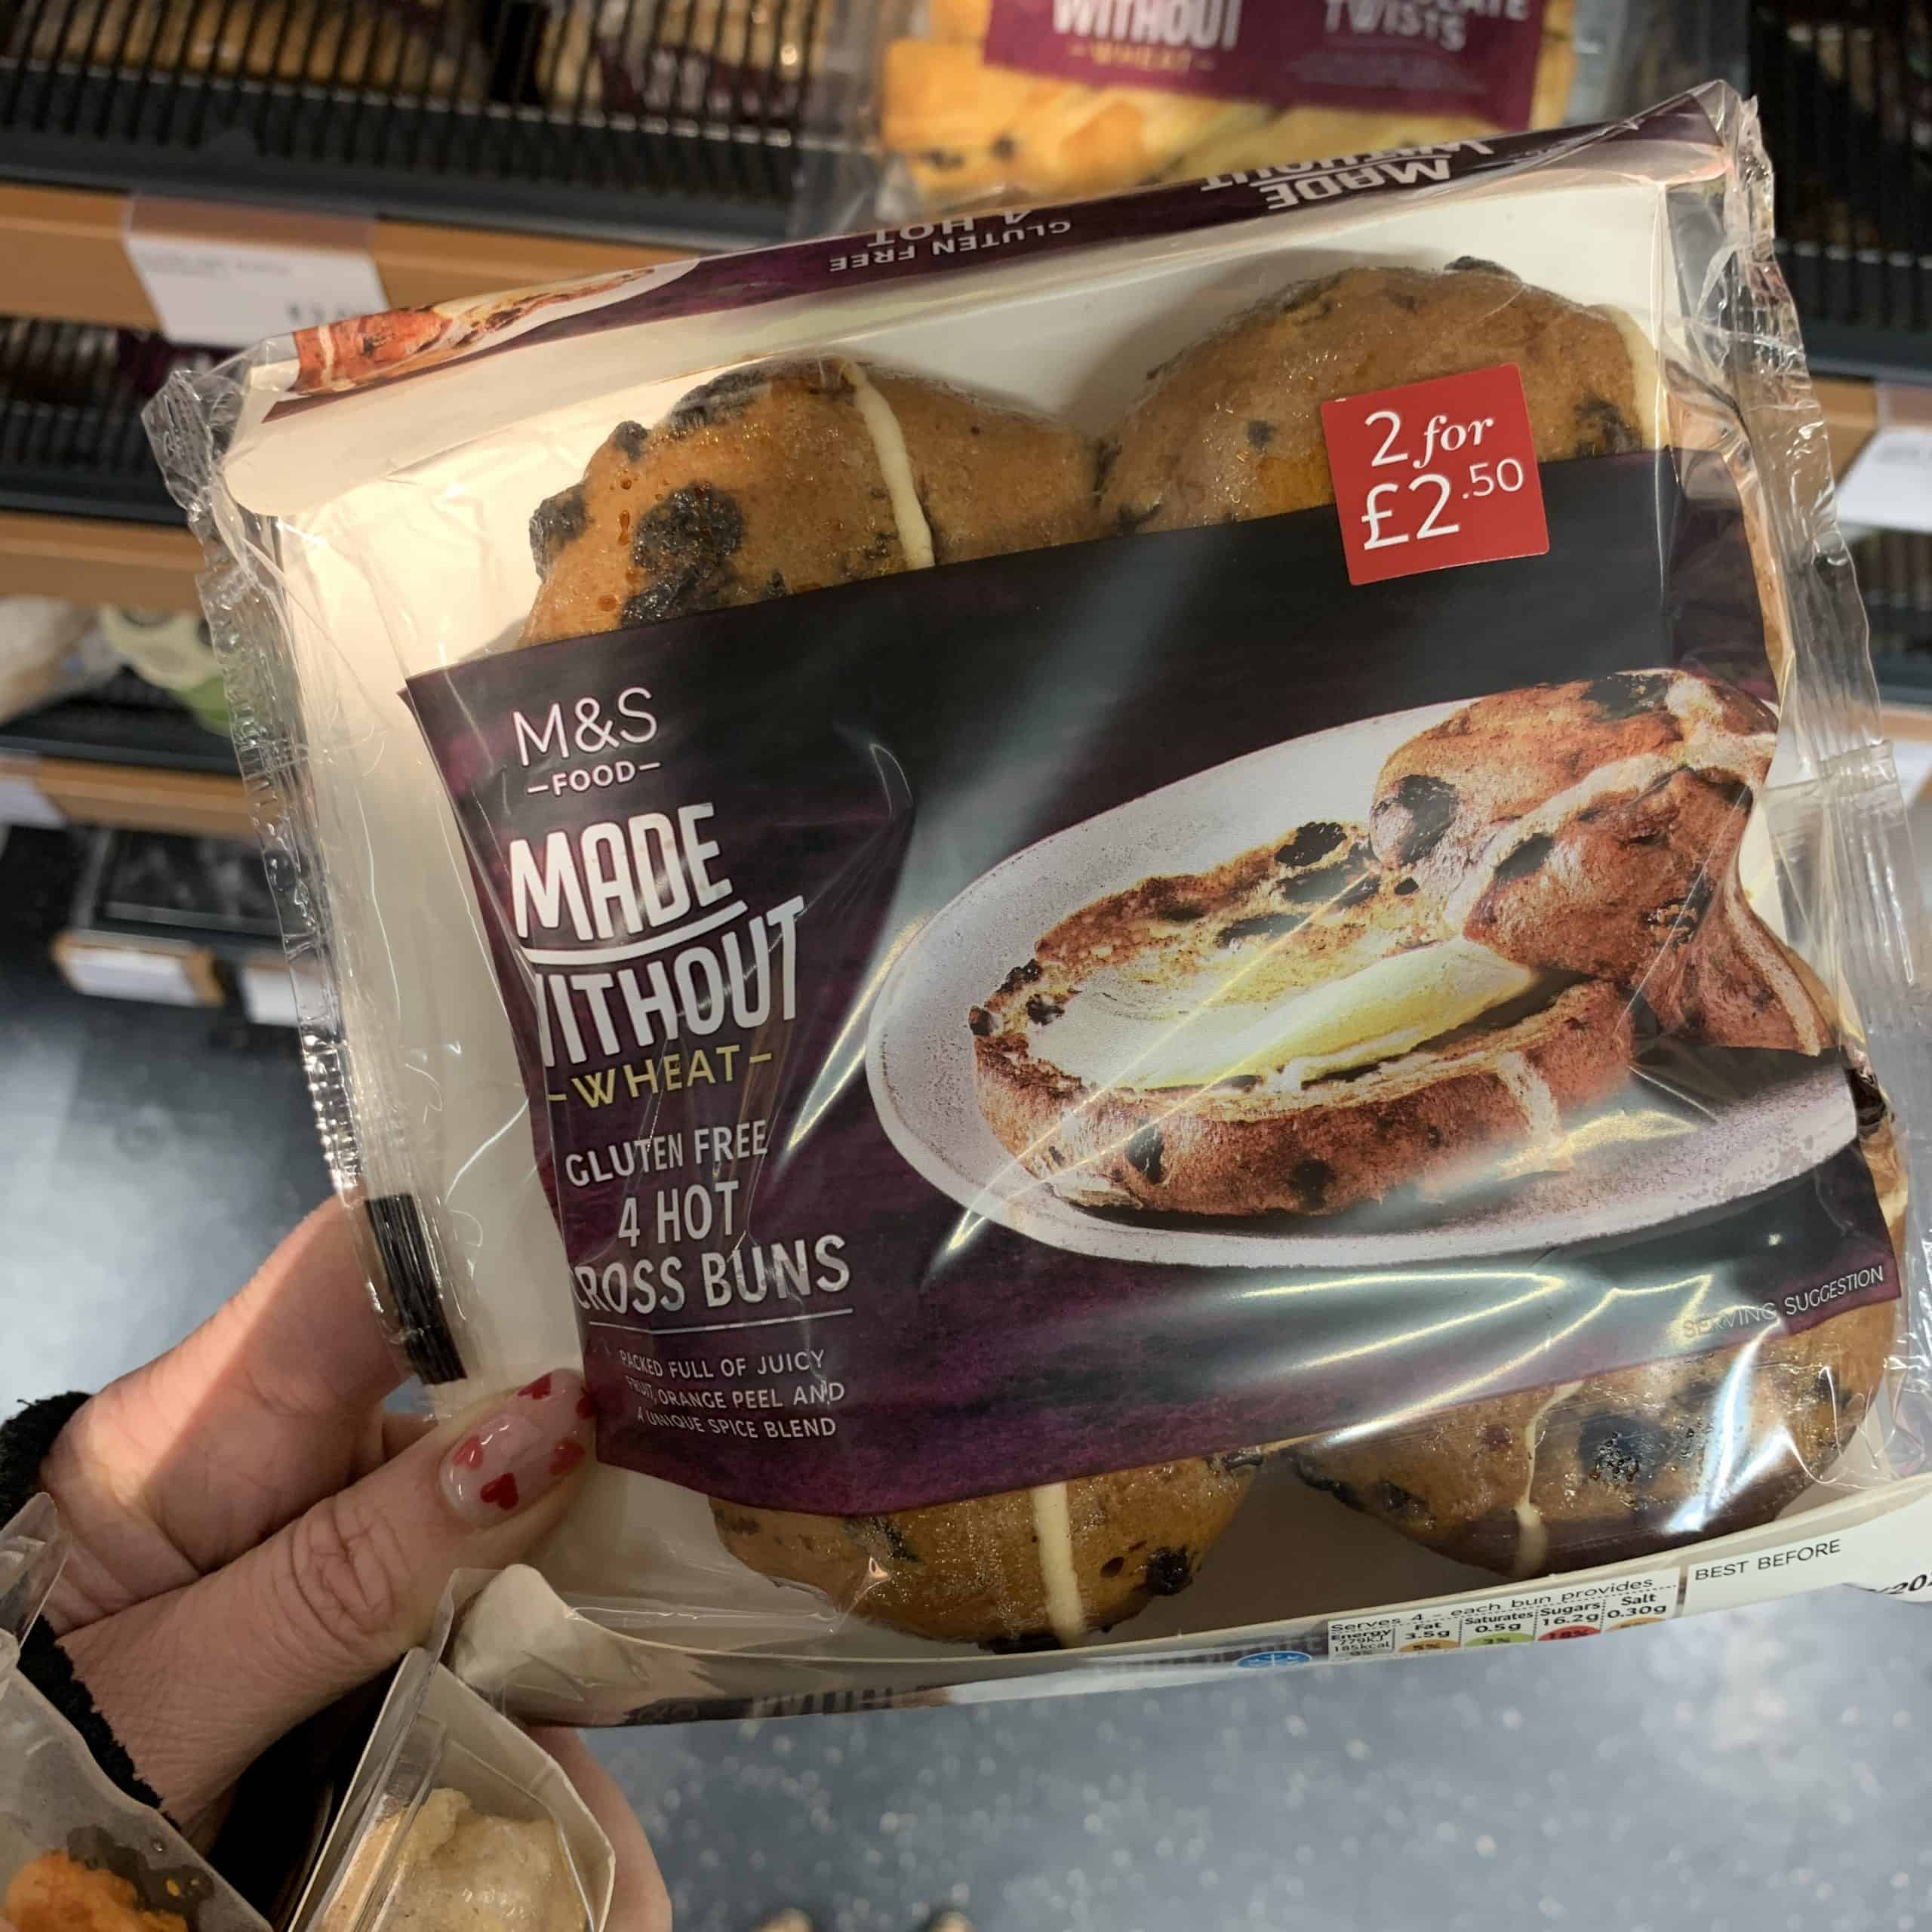 marks and spencer gluten free hot cross buns